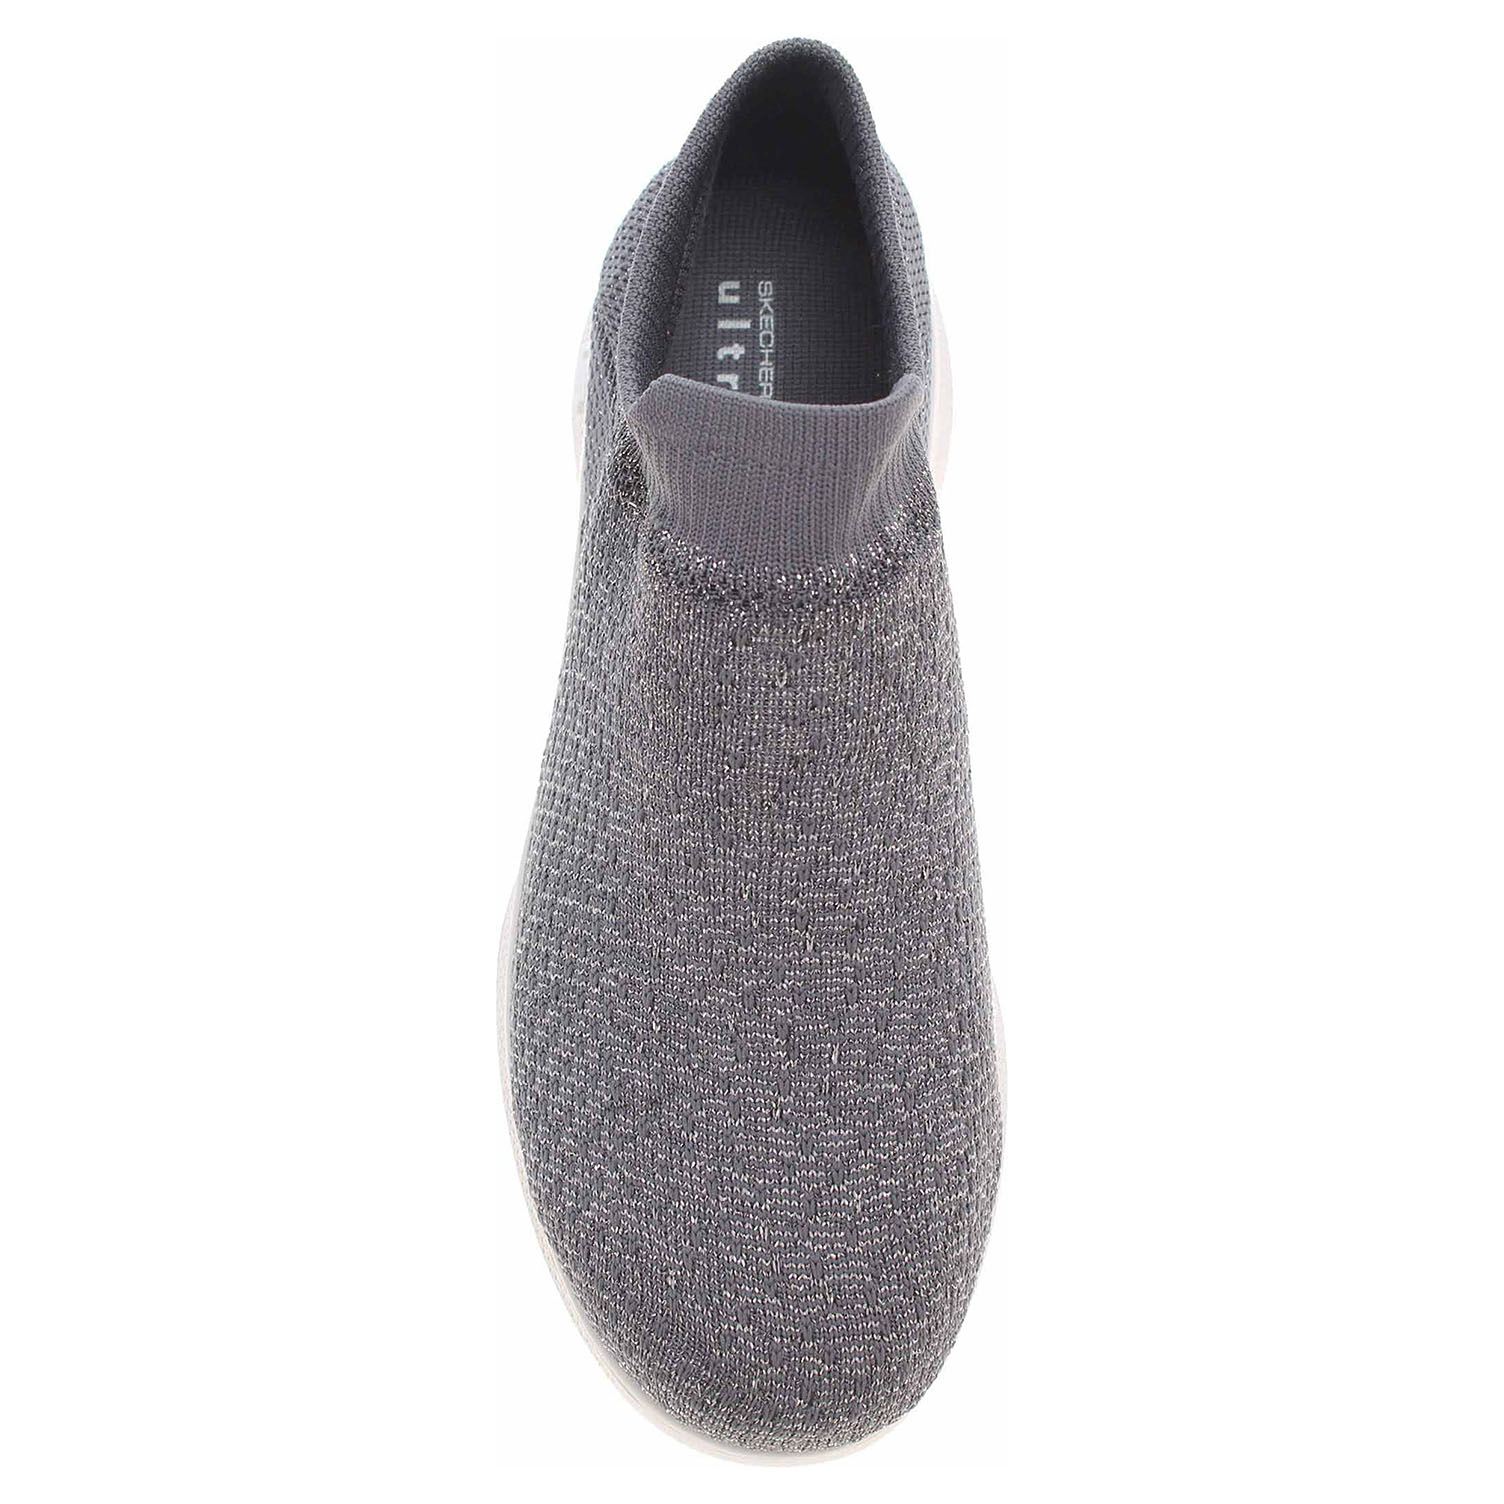 detail Skechers Go Step Lite - Flair charcoal